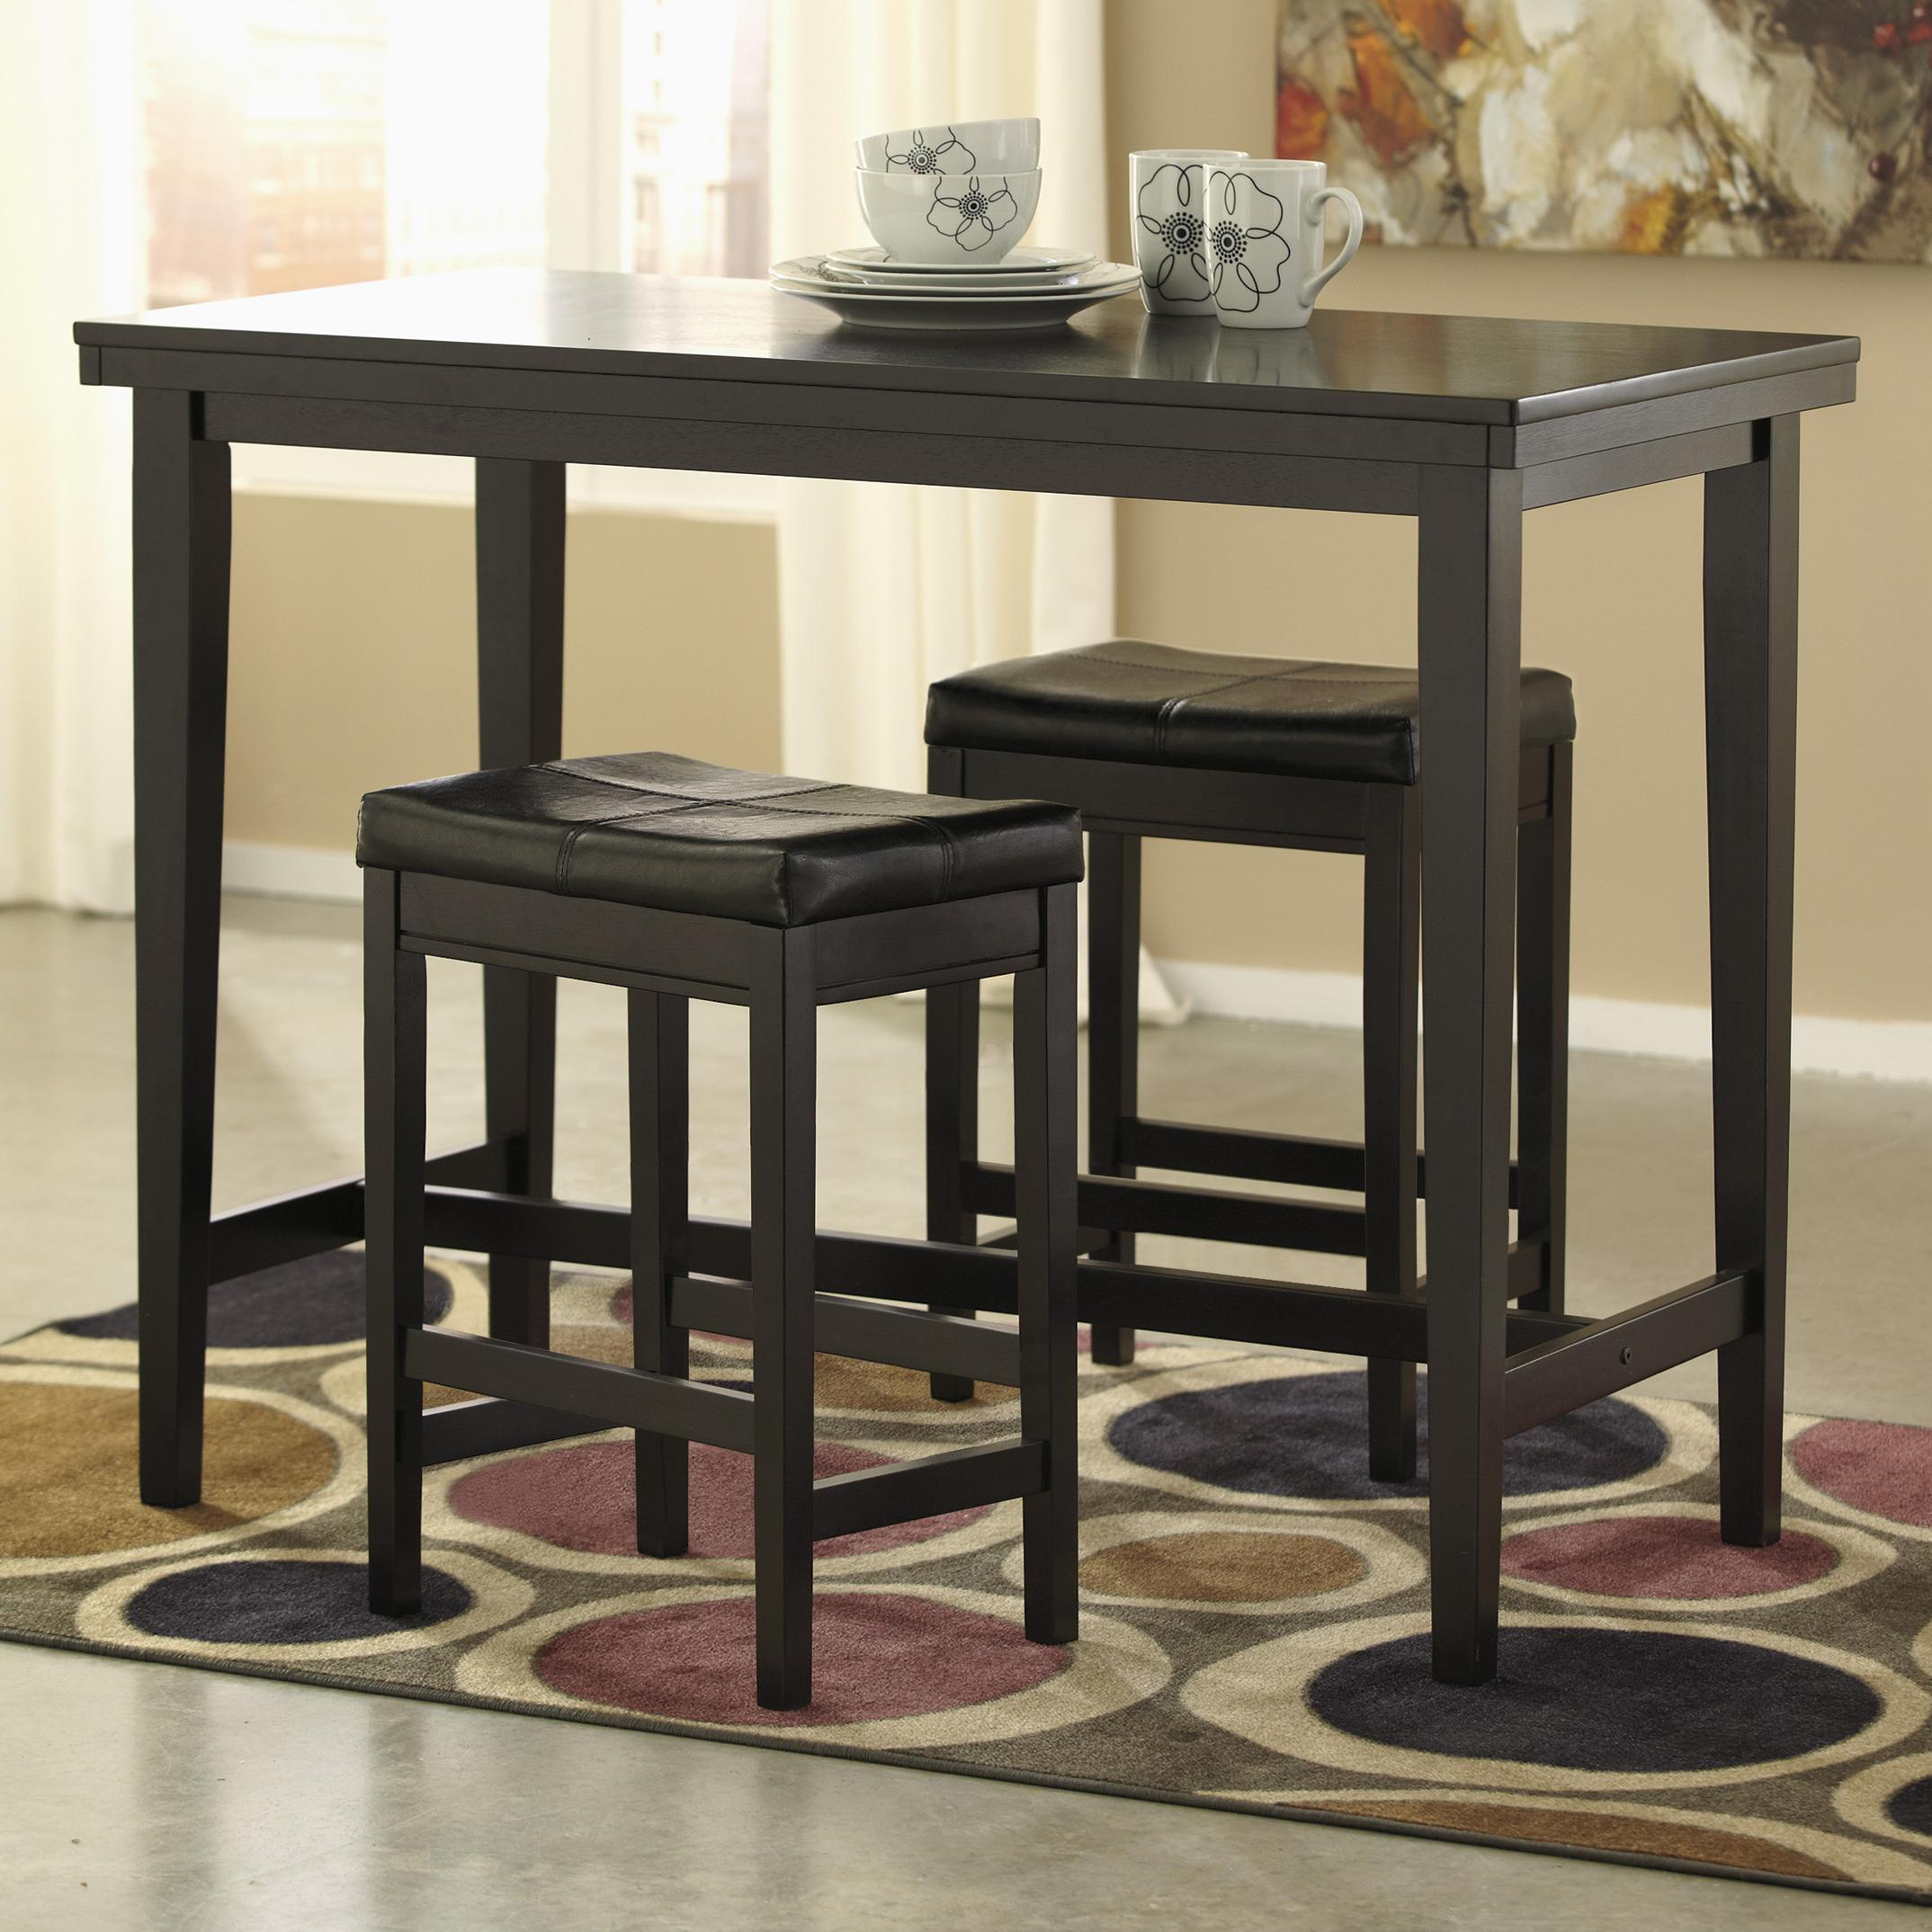 3-Piece Counter Table Set with Dark Brown Upholstered Stools